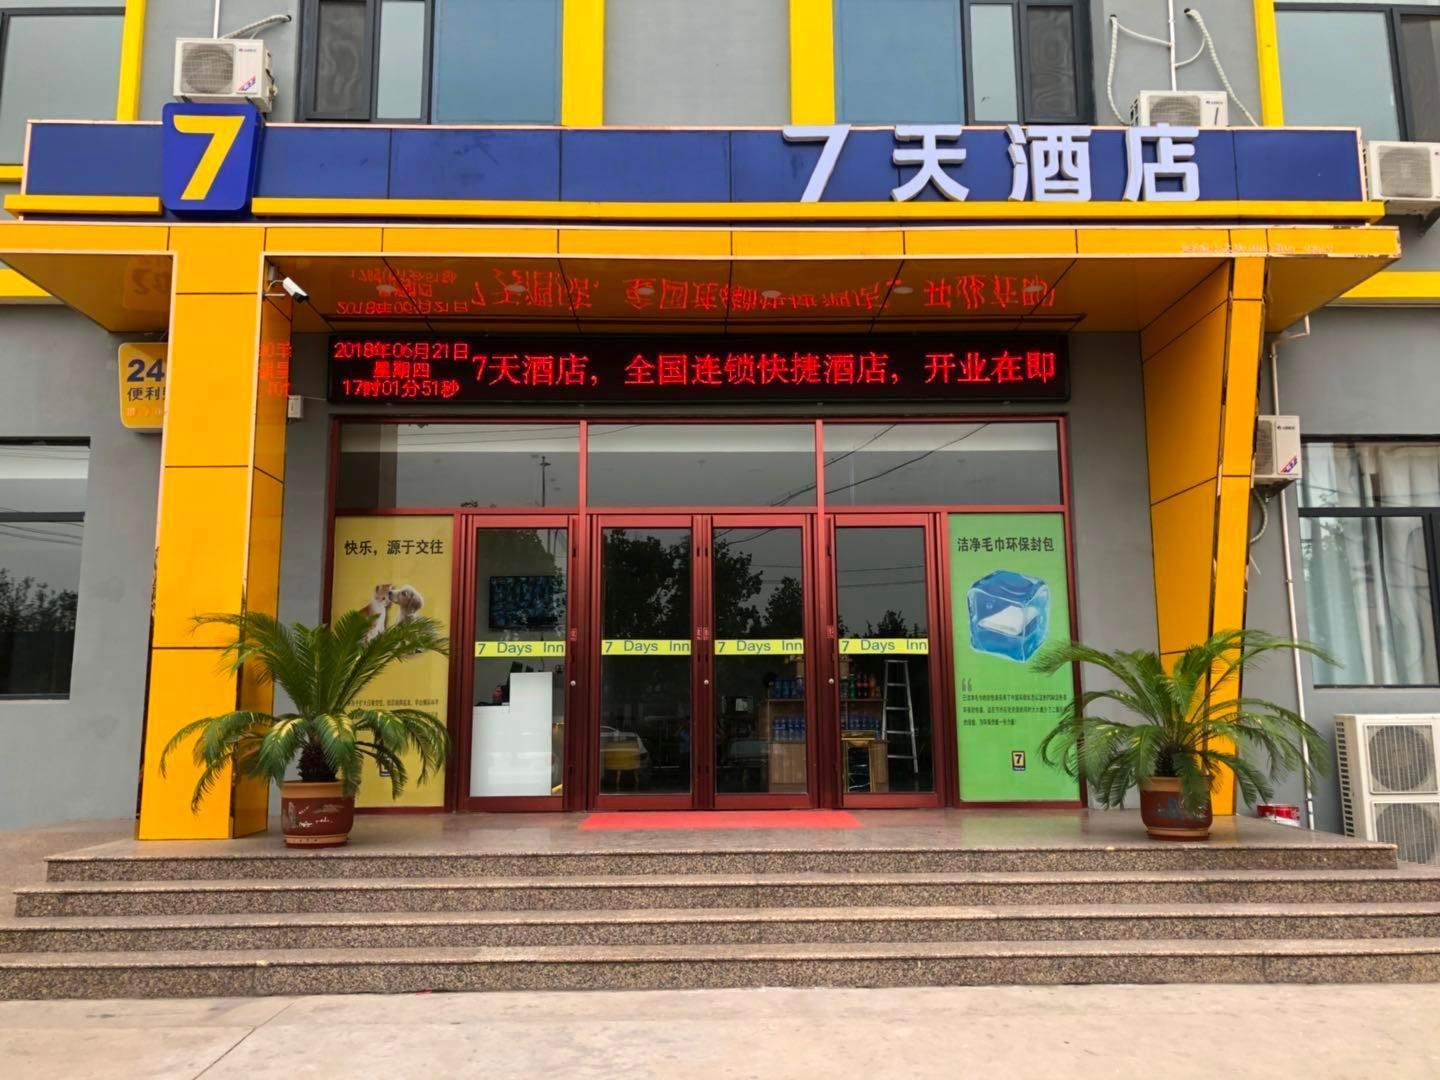 7 Days Inn·Wu'An Bus Station, Handan